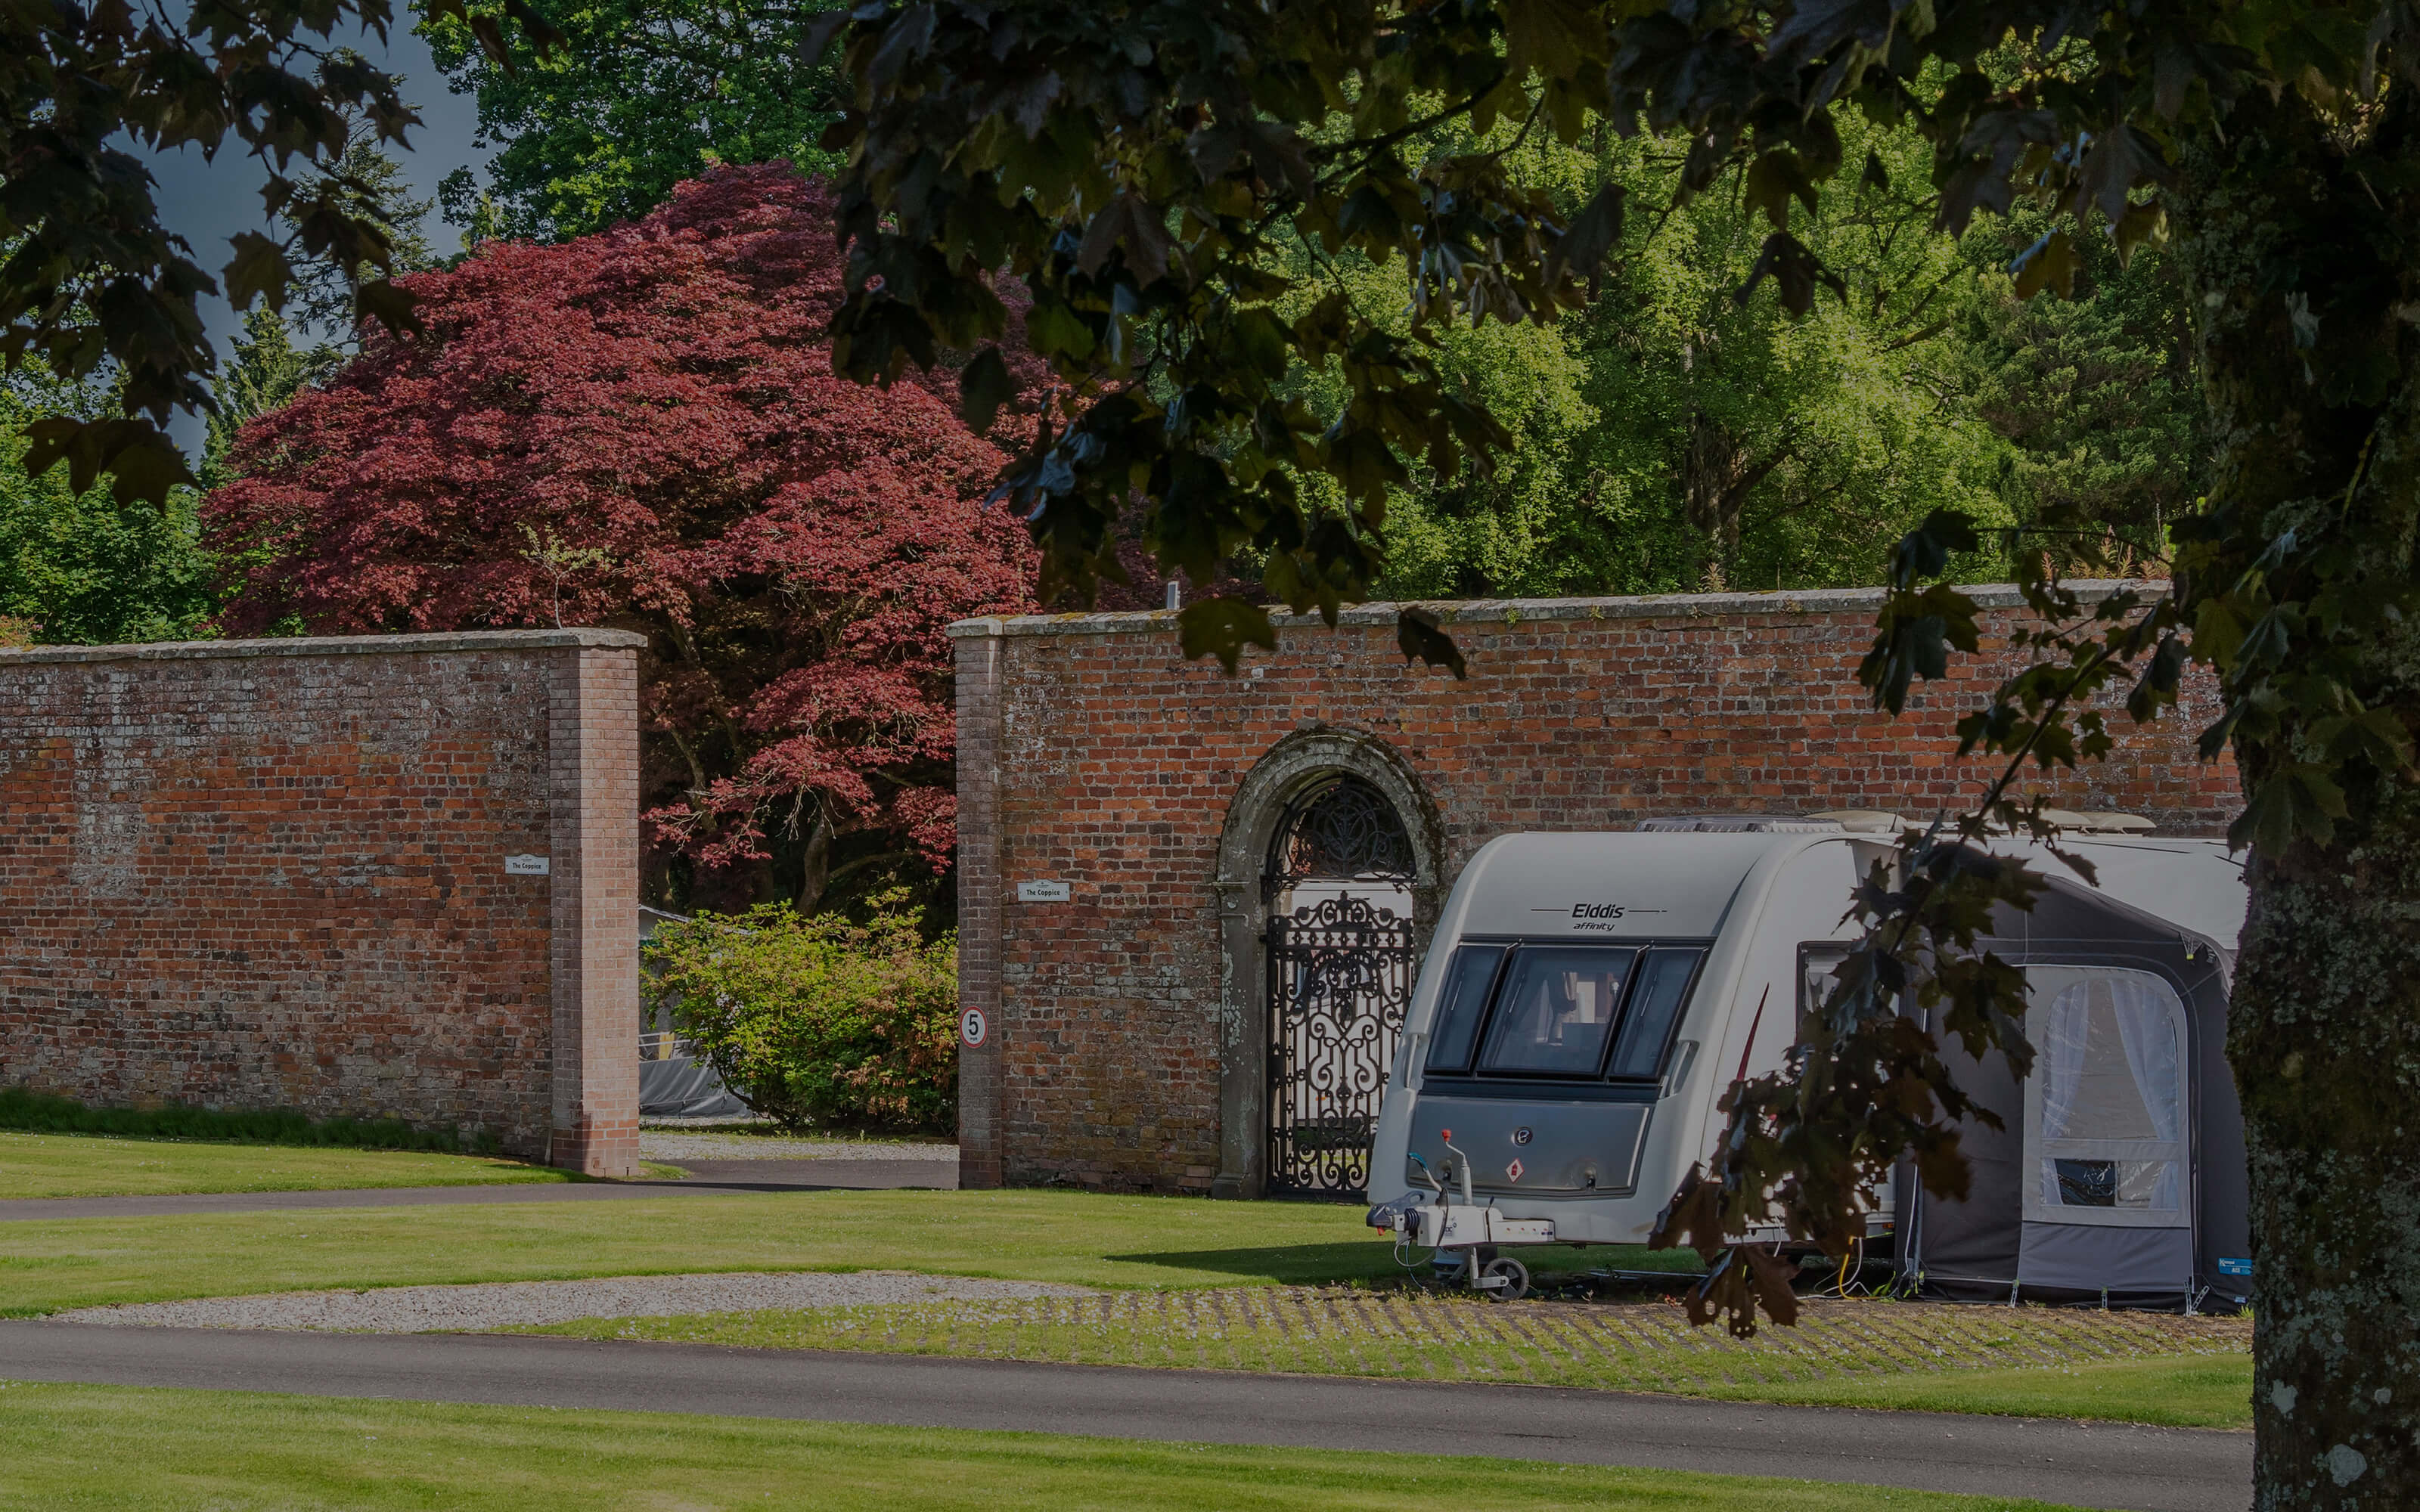 A caravan to the right of the walled garden entrance.